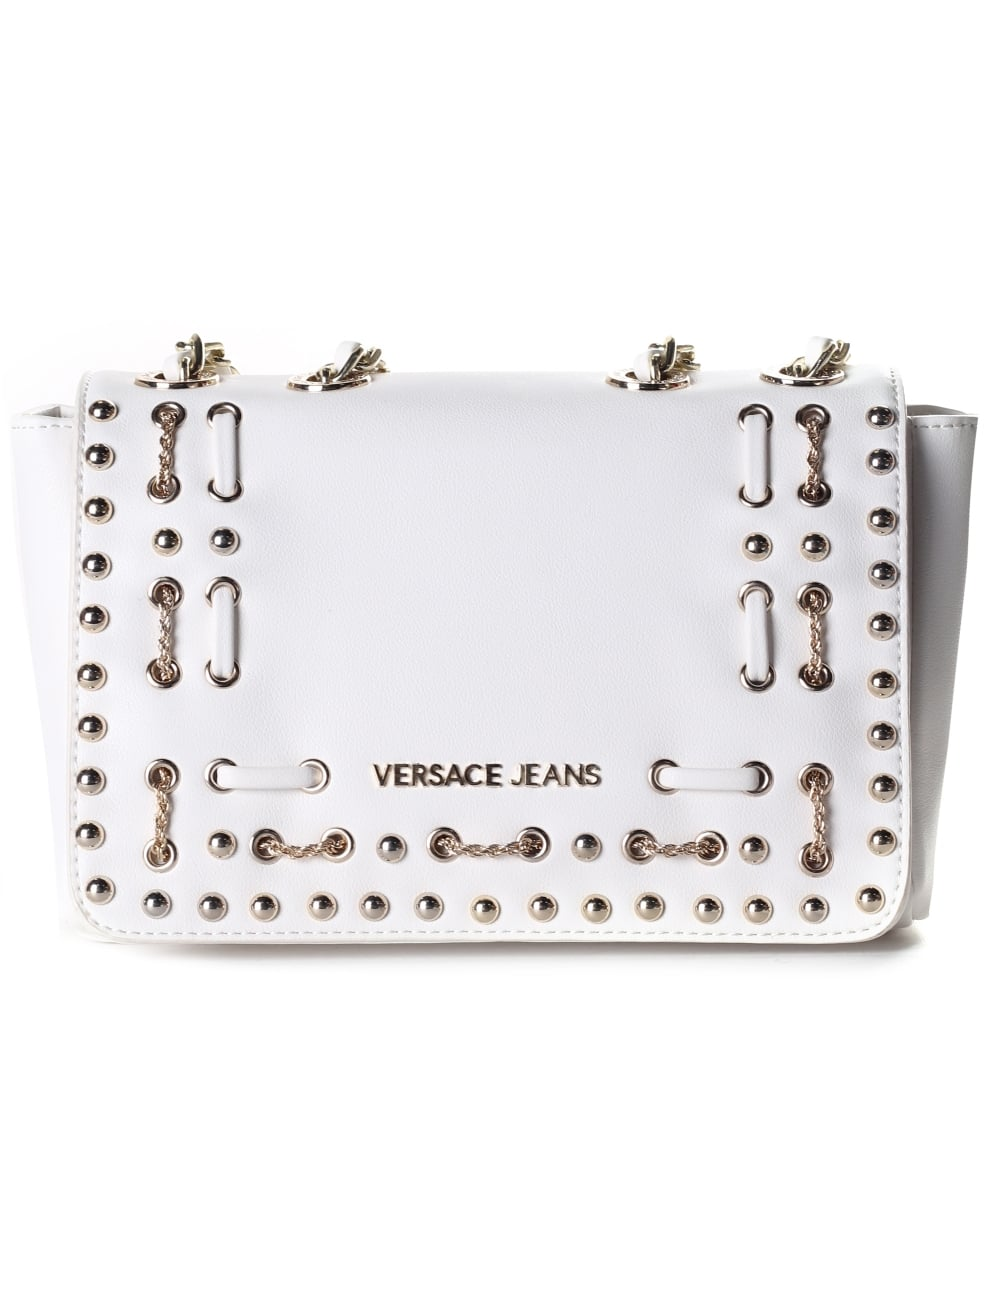 8fdc8d31eb8b Versace Jeans Small Studded Women s Chain Strap bag White